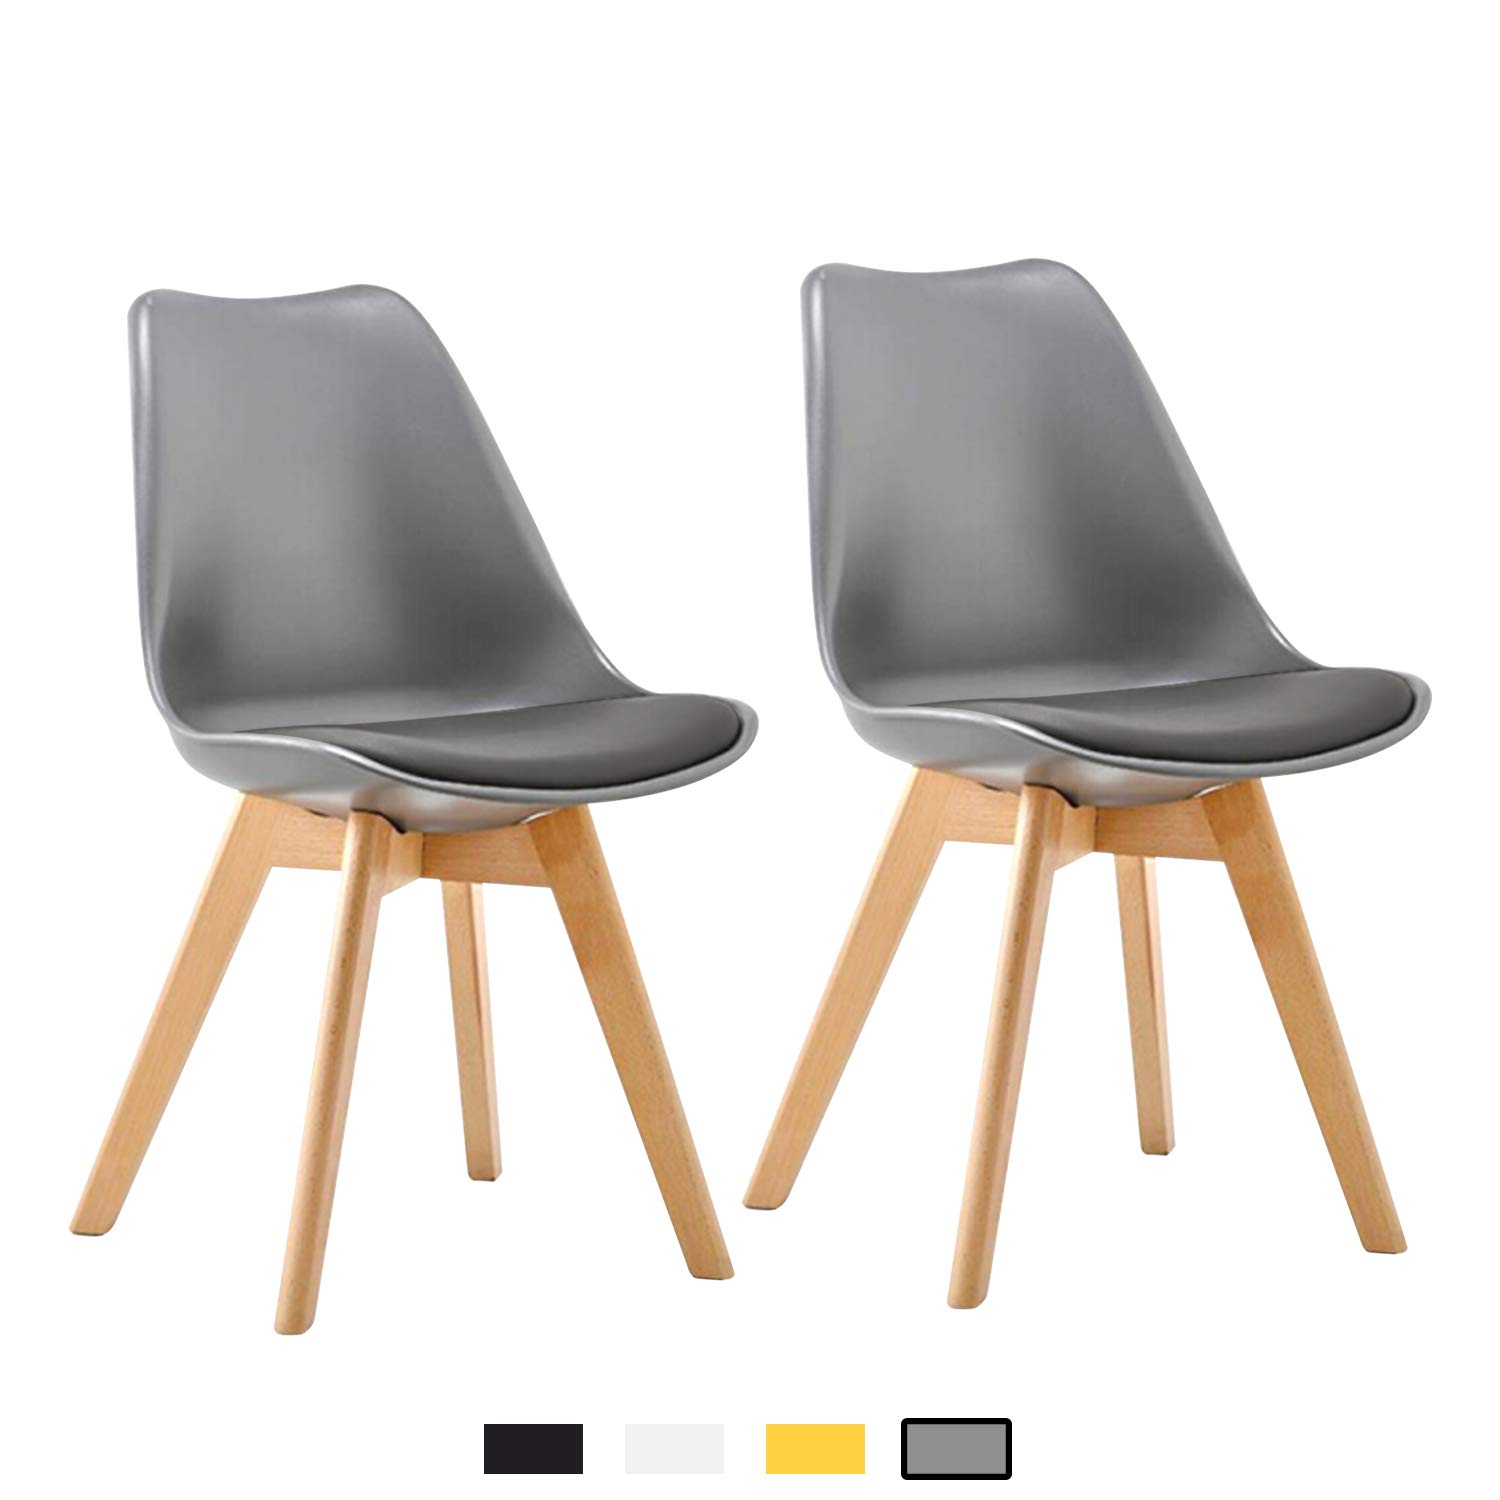 4d6edcfbab1d7 YEEFY DSW Dining Chairs Upholstered Tulip Chair for Living Room, Dining  Room, Set of 4 (Gray)